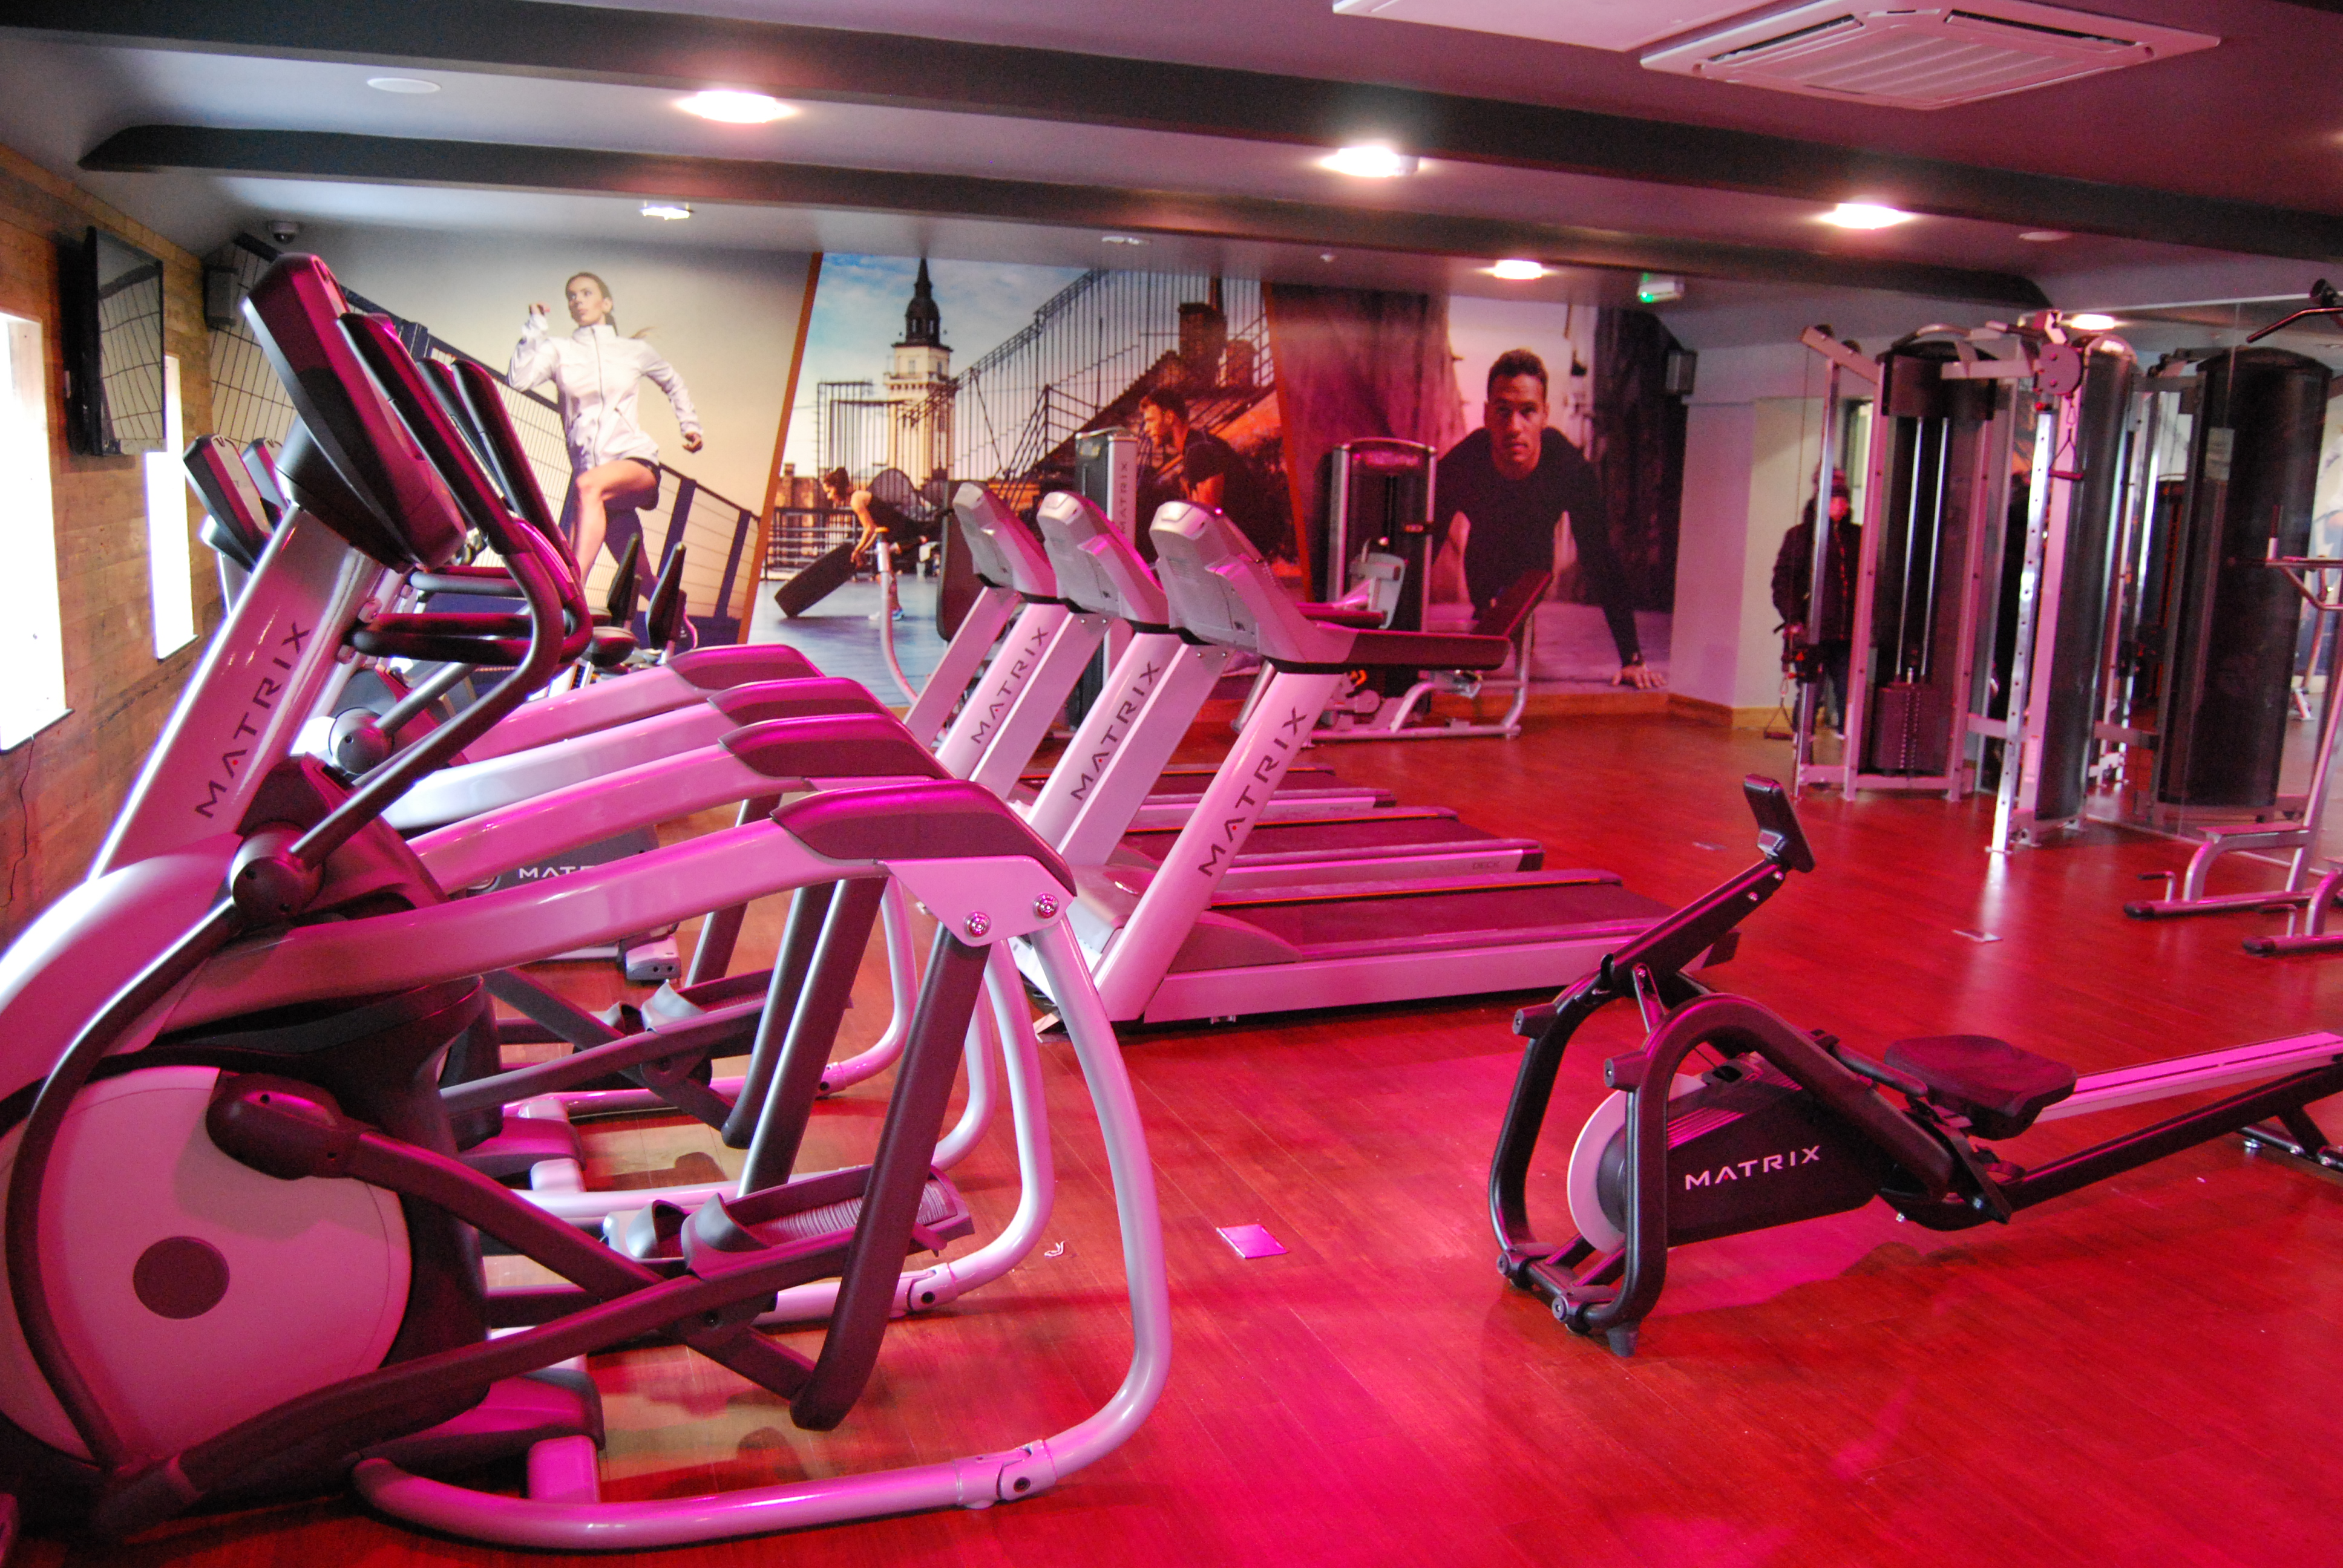 Guests have free use of the fitness suite